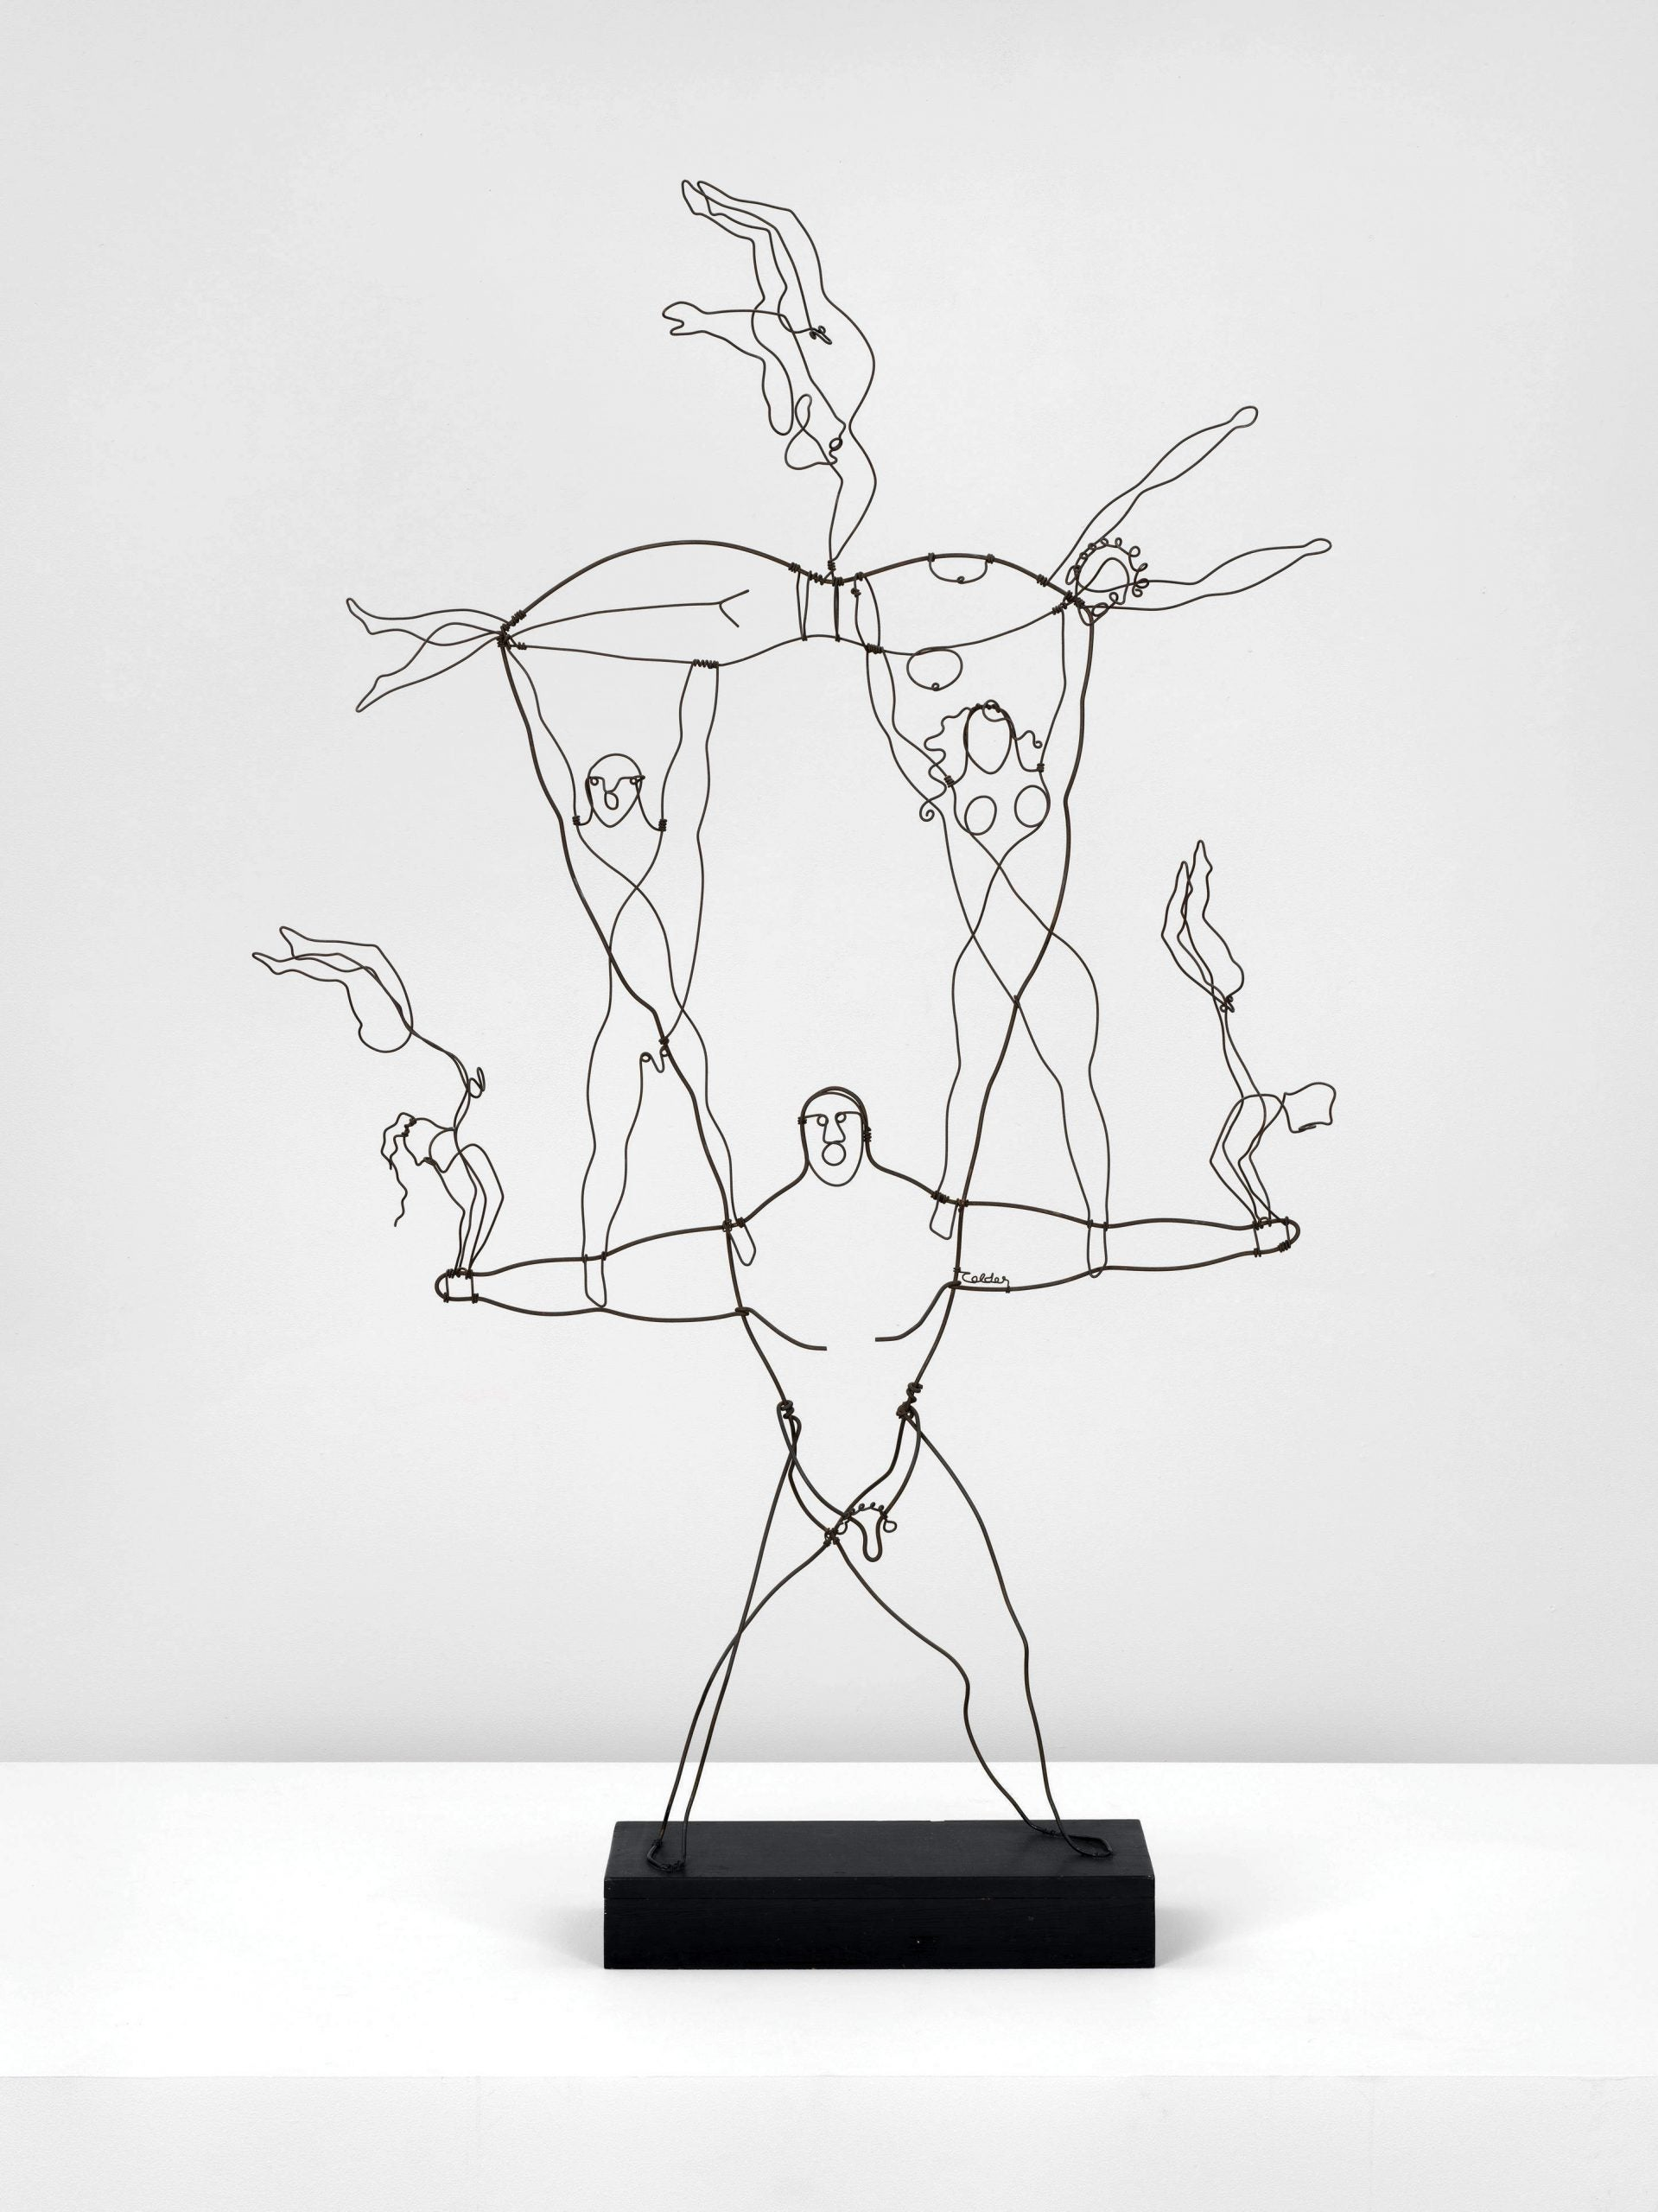 Man on a wire: The playful simplicity of Alexander Calder